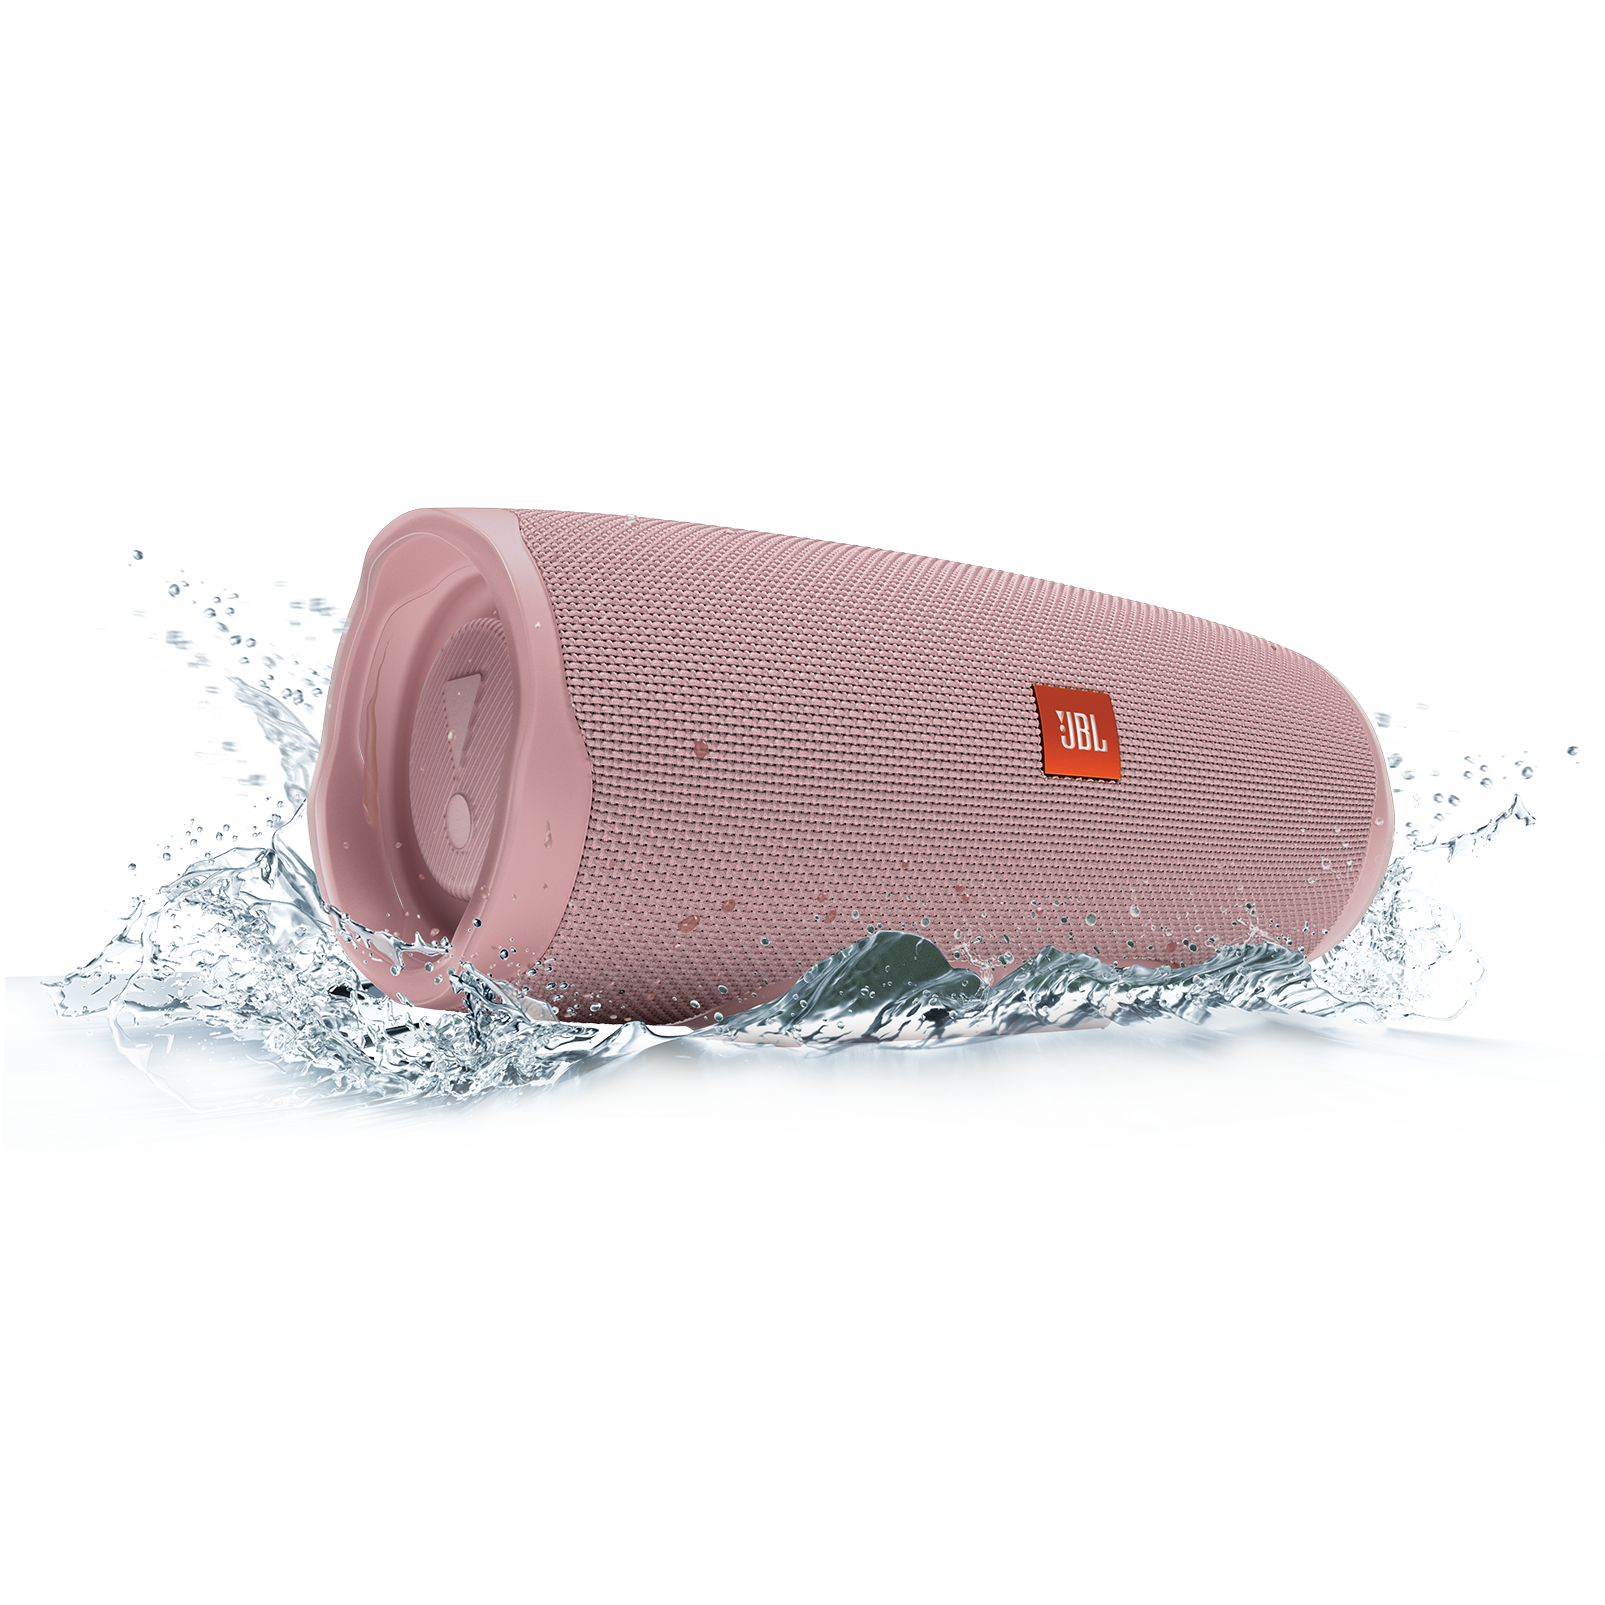 JBL Charge 4 - Pink - Portable Bluetooth speaker - Detailshot 5